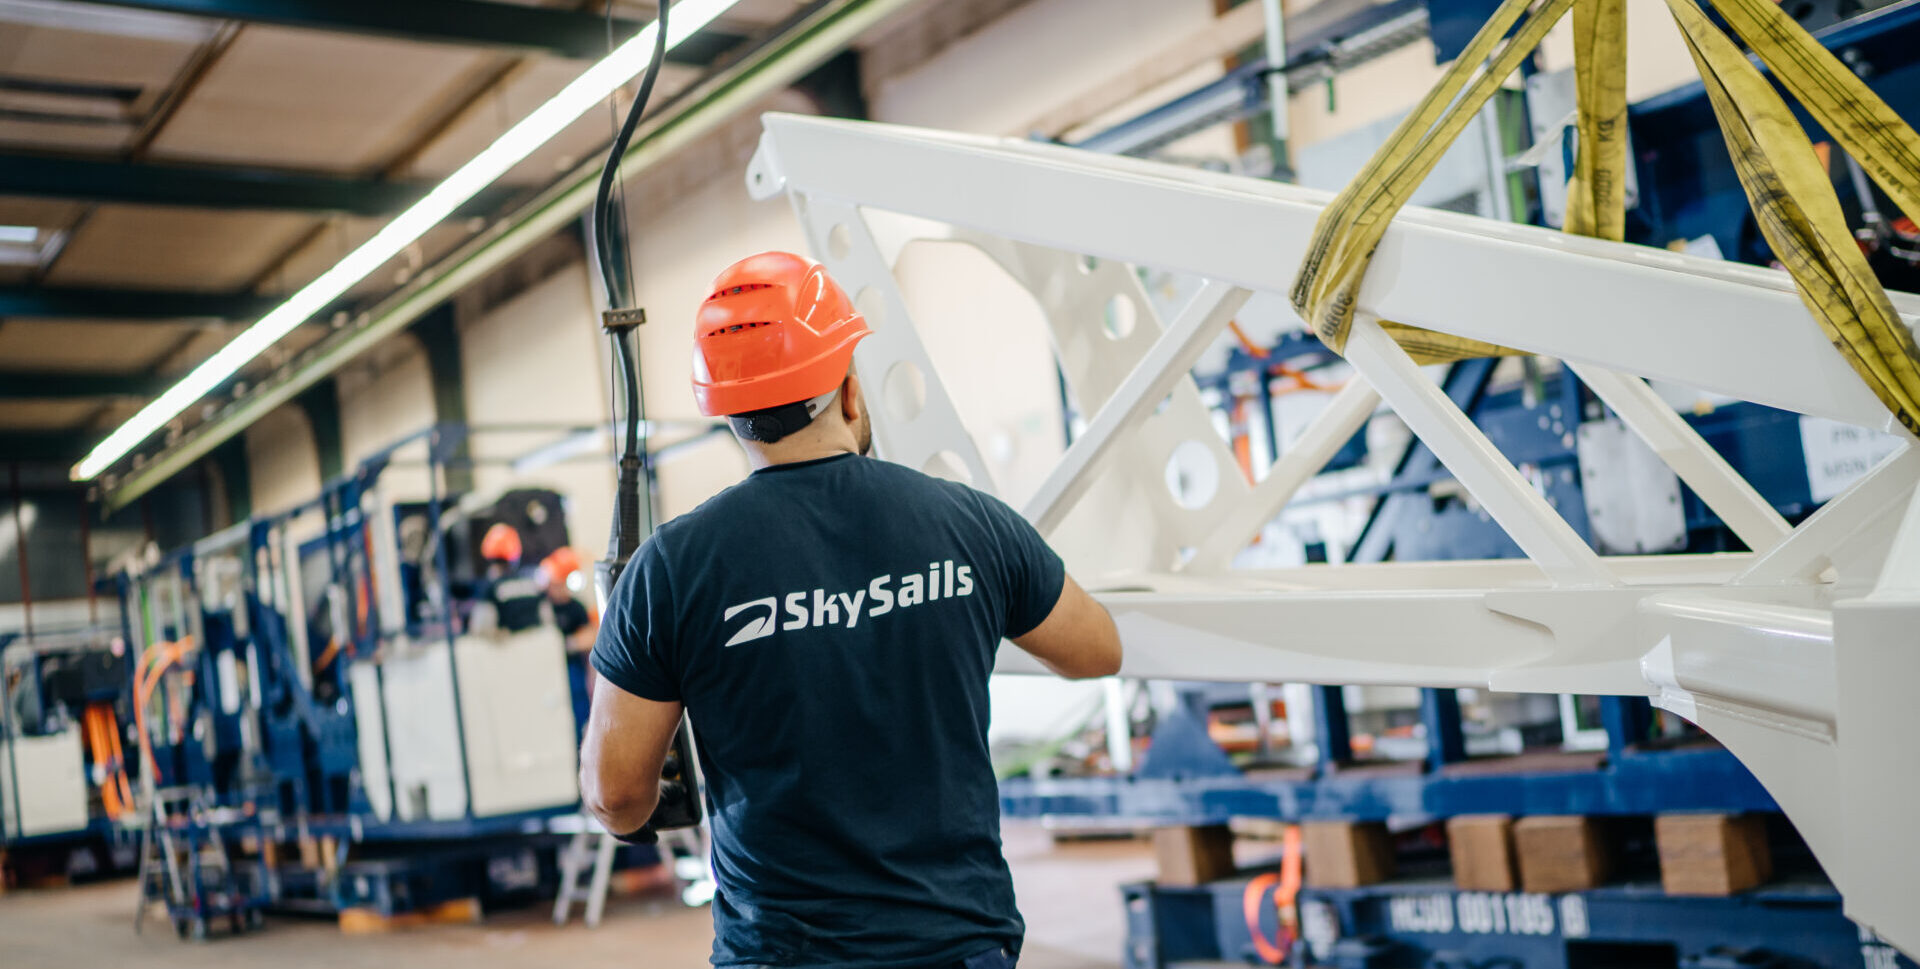 Mechanic assembling airborne wind energy system launch and landing mast at SkySails Power production site.